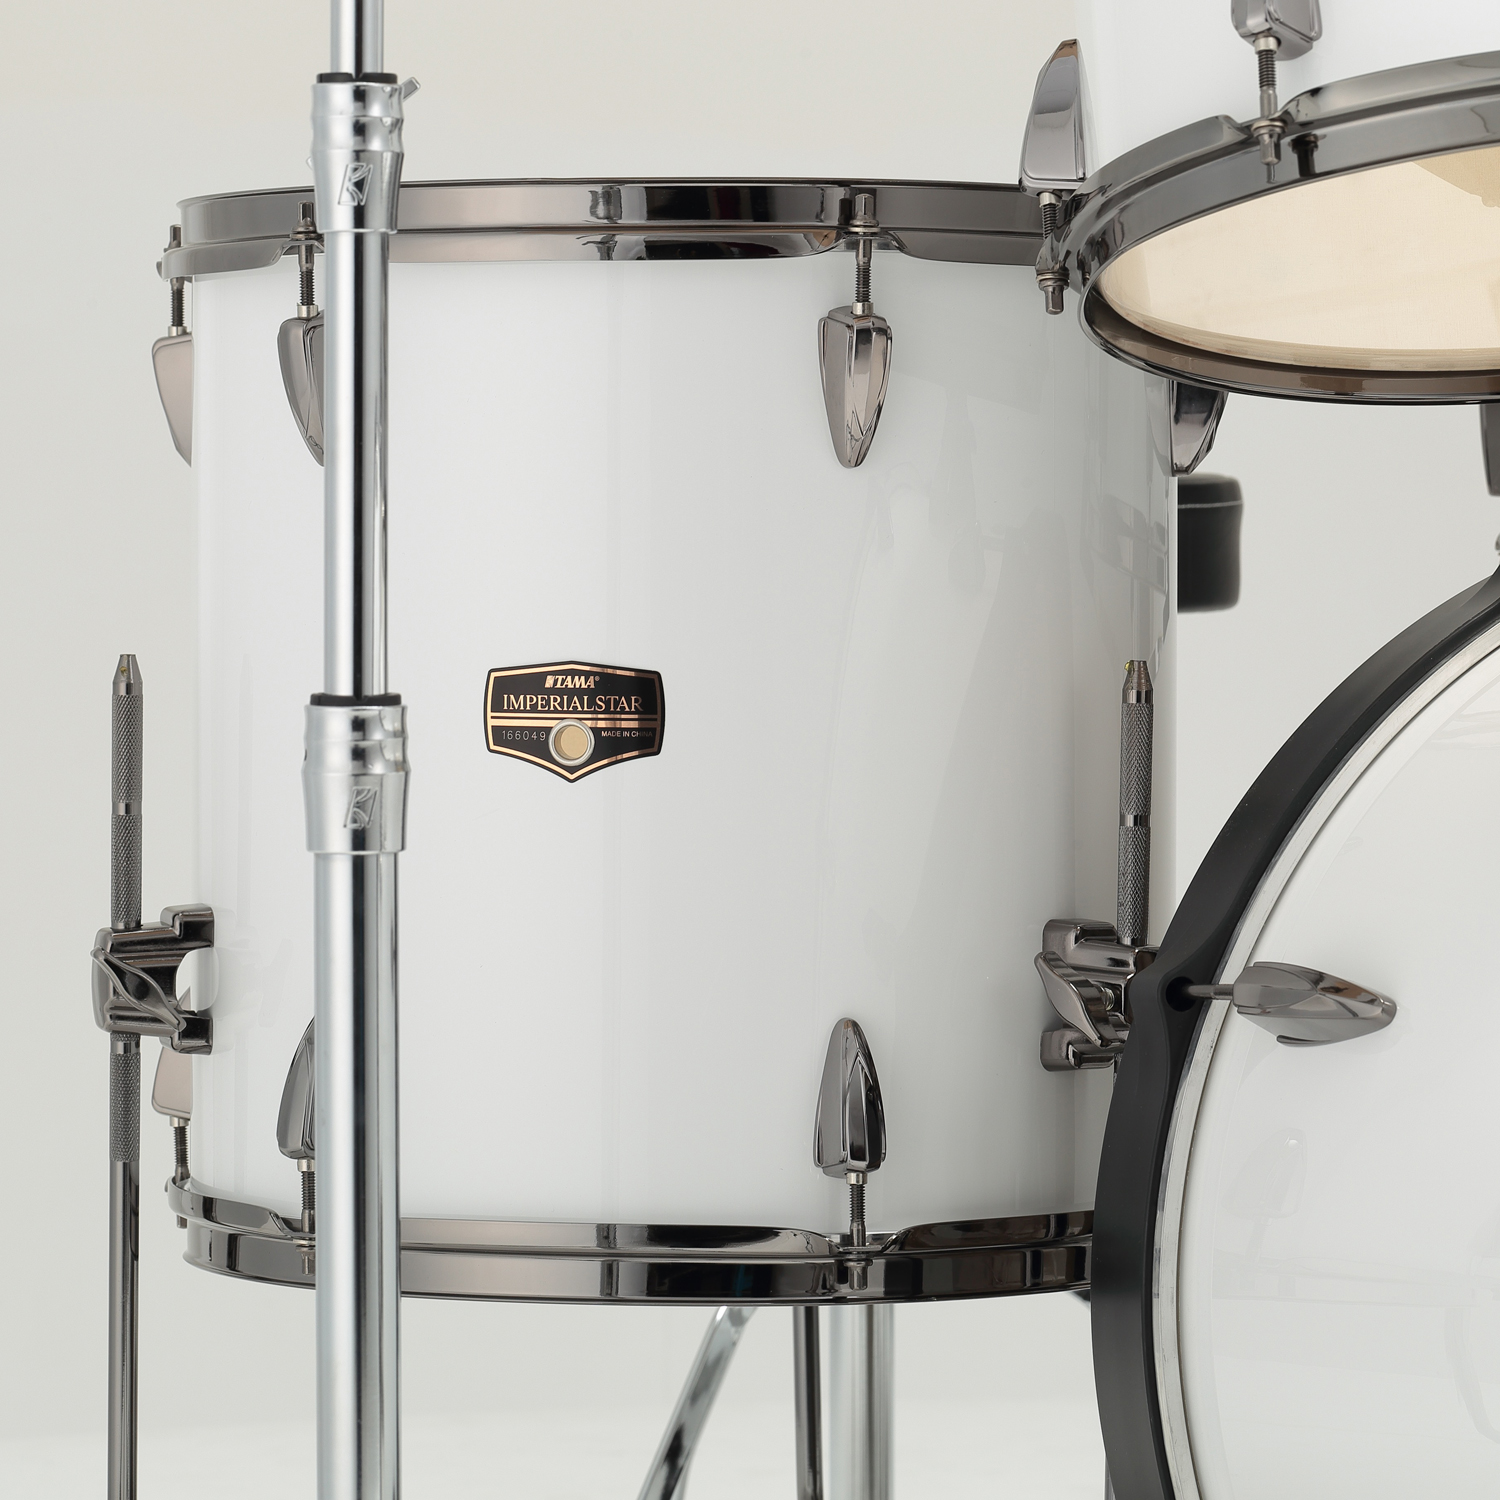 Tama Imperialstar IP50H6N Floor Tom